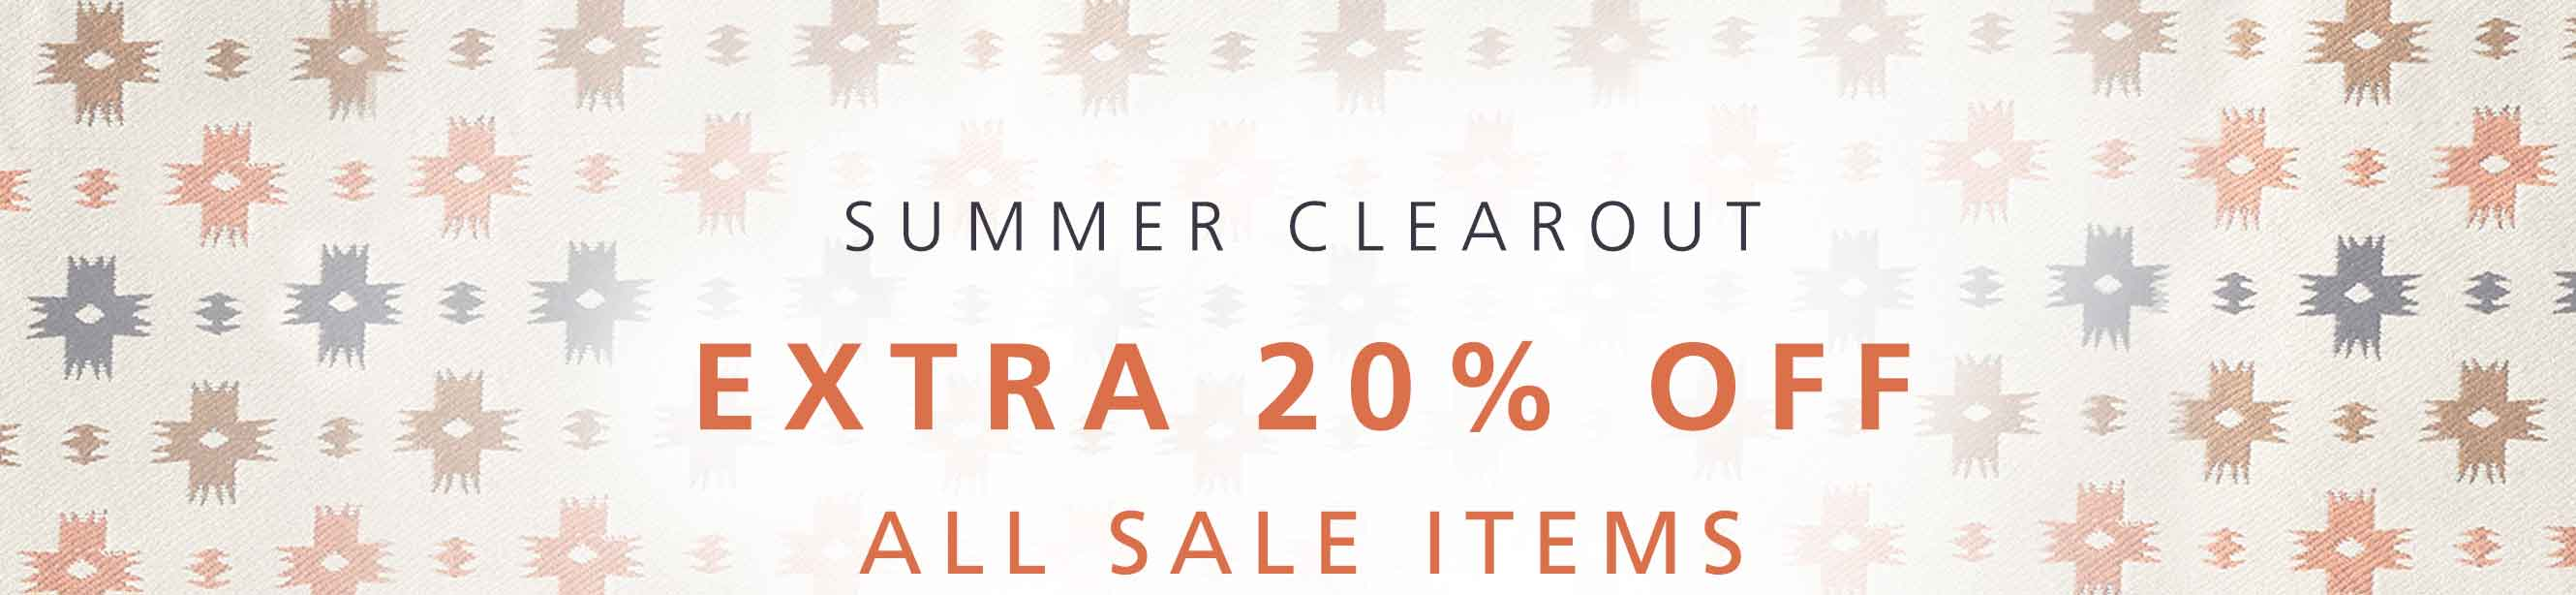 SUMMER CLEAROUT - Extra 20% off all sale items